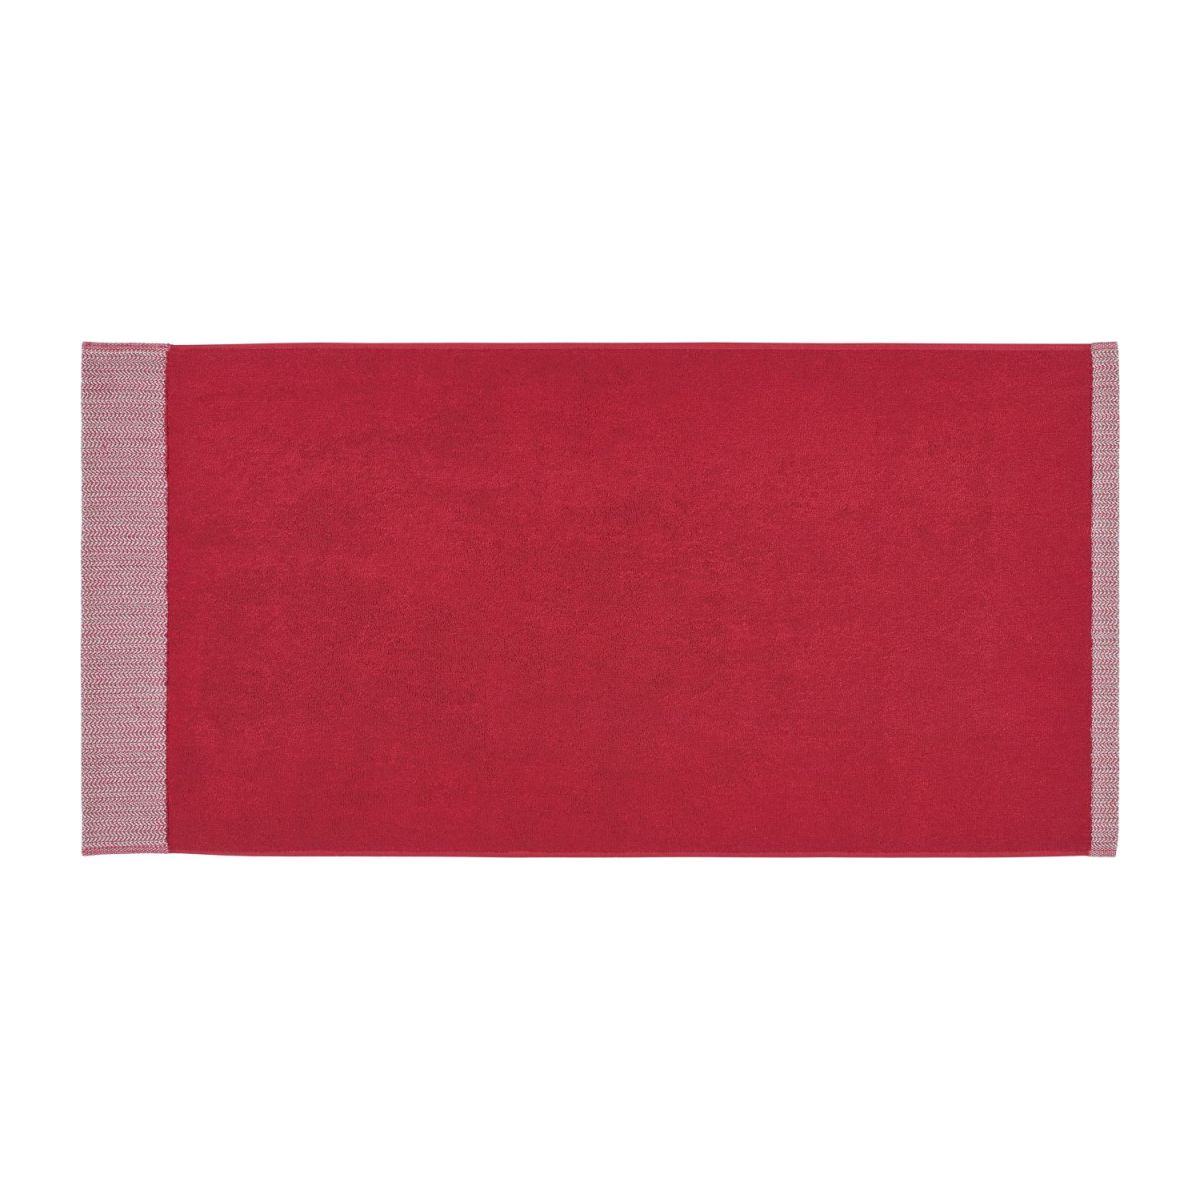 Bath towel made of cotton 70x140, red n°2